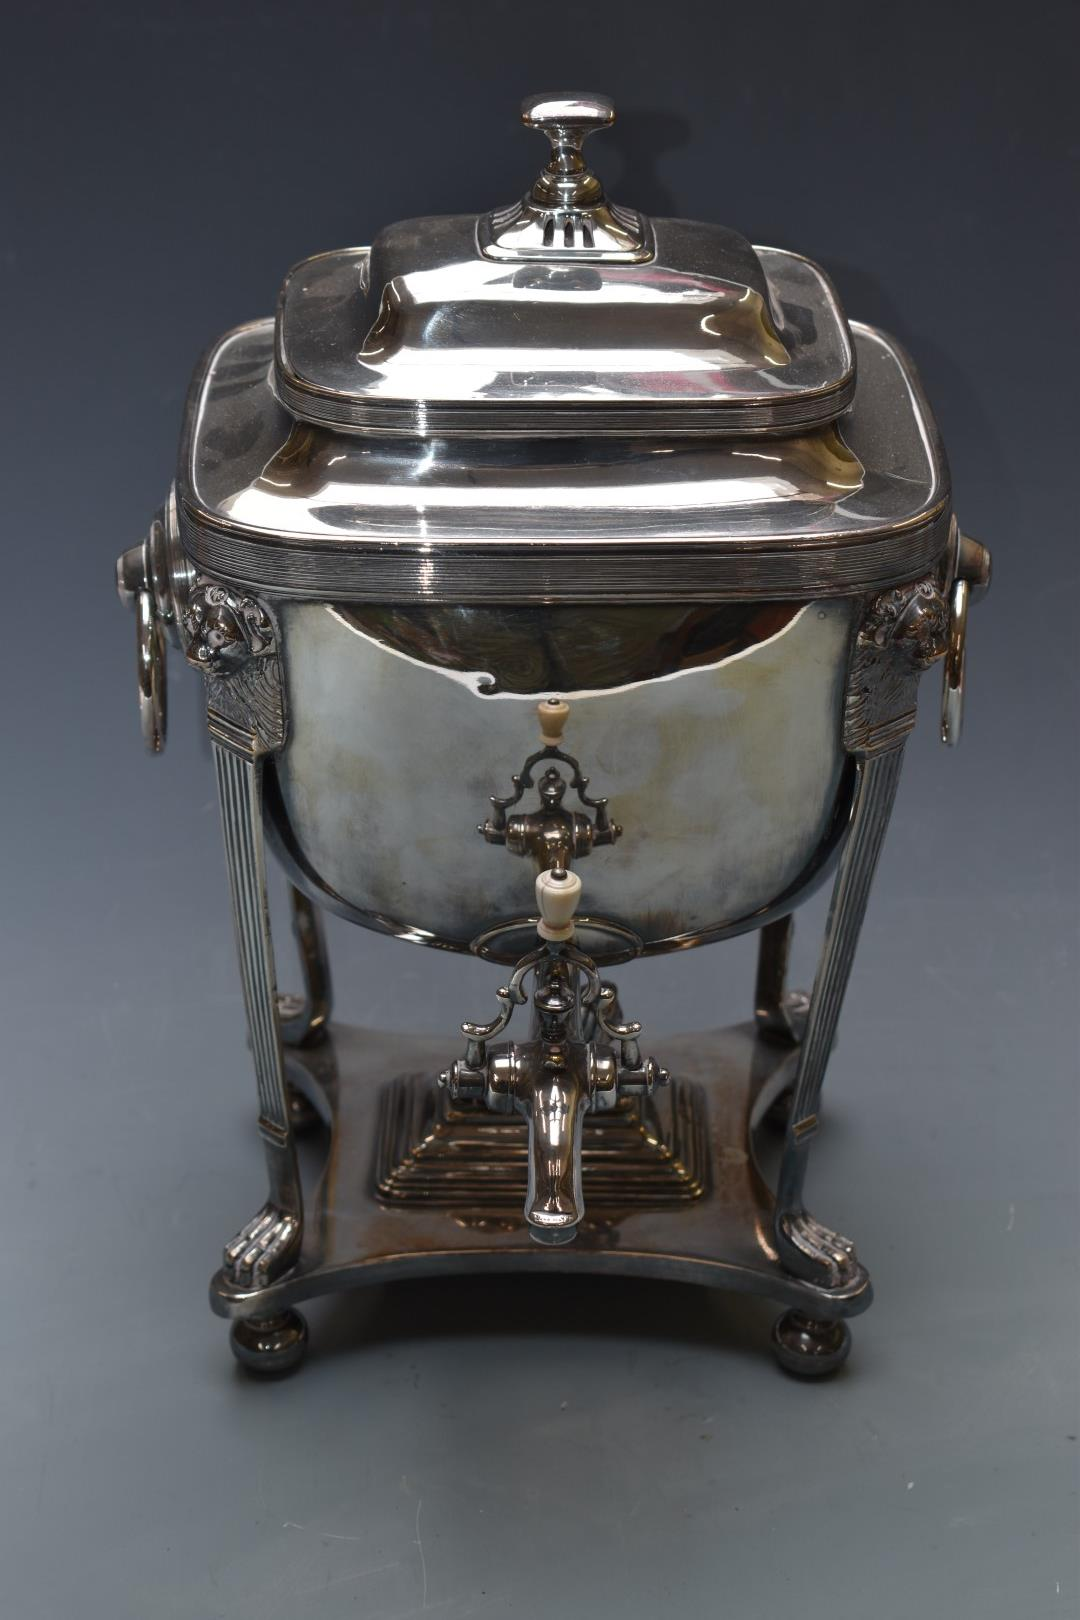 19thC silver plated samovar of classical form, with lions mask and paw supports, H41cm